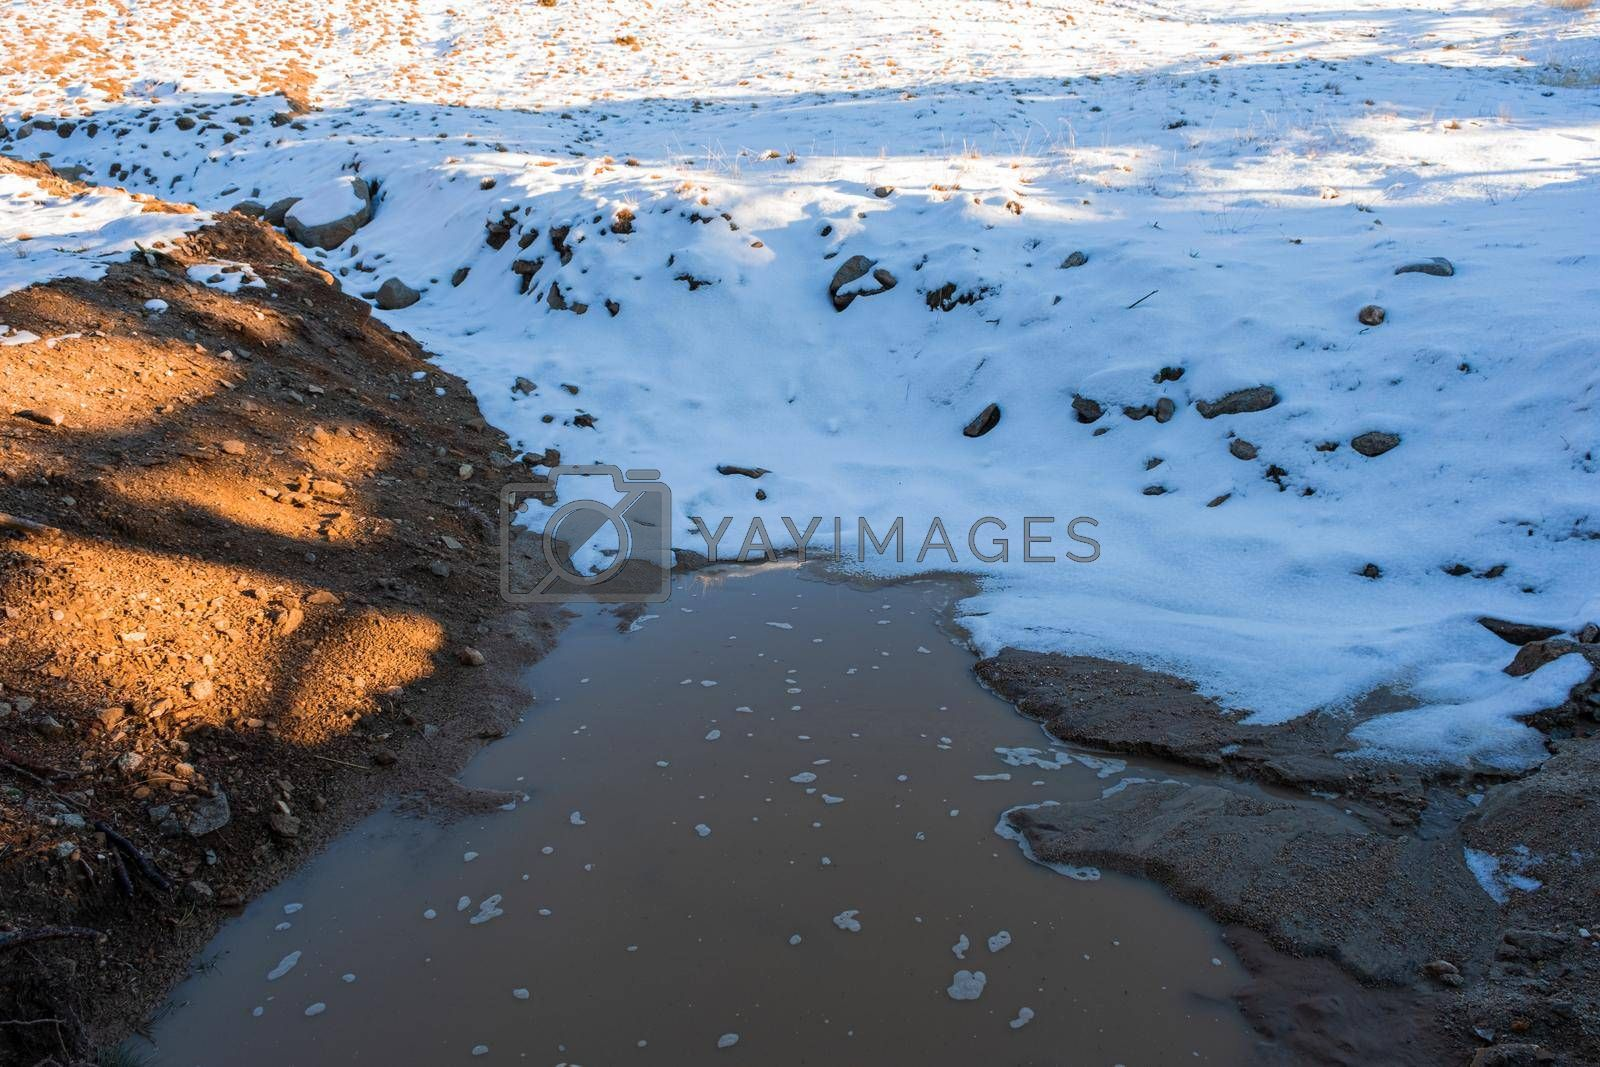 It depicts a water puddle composed of melted ice and snow around